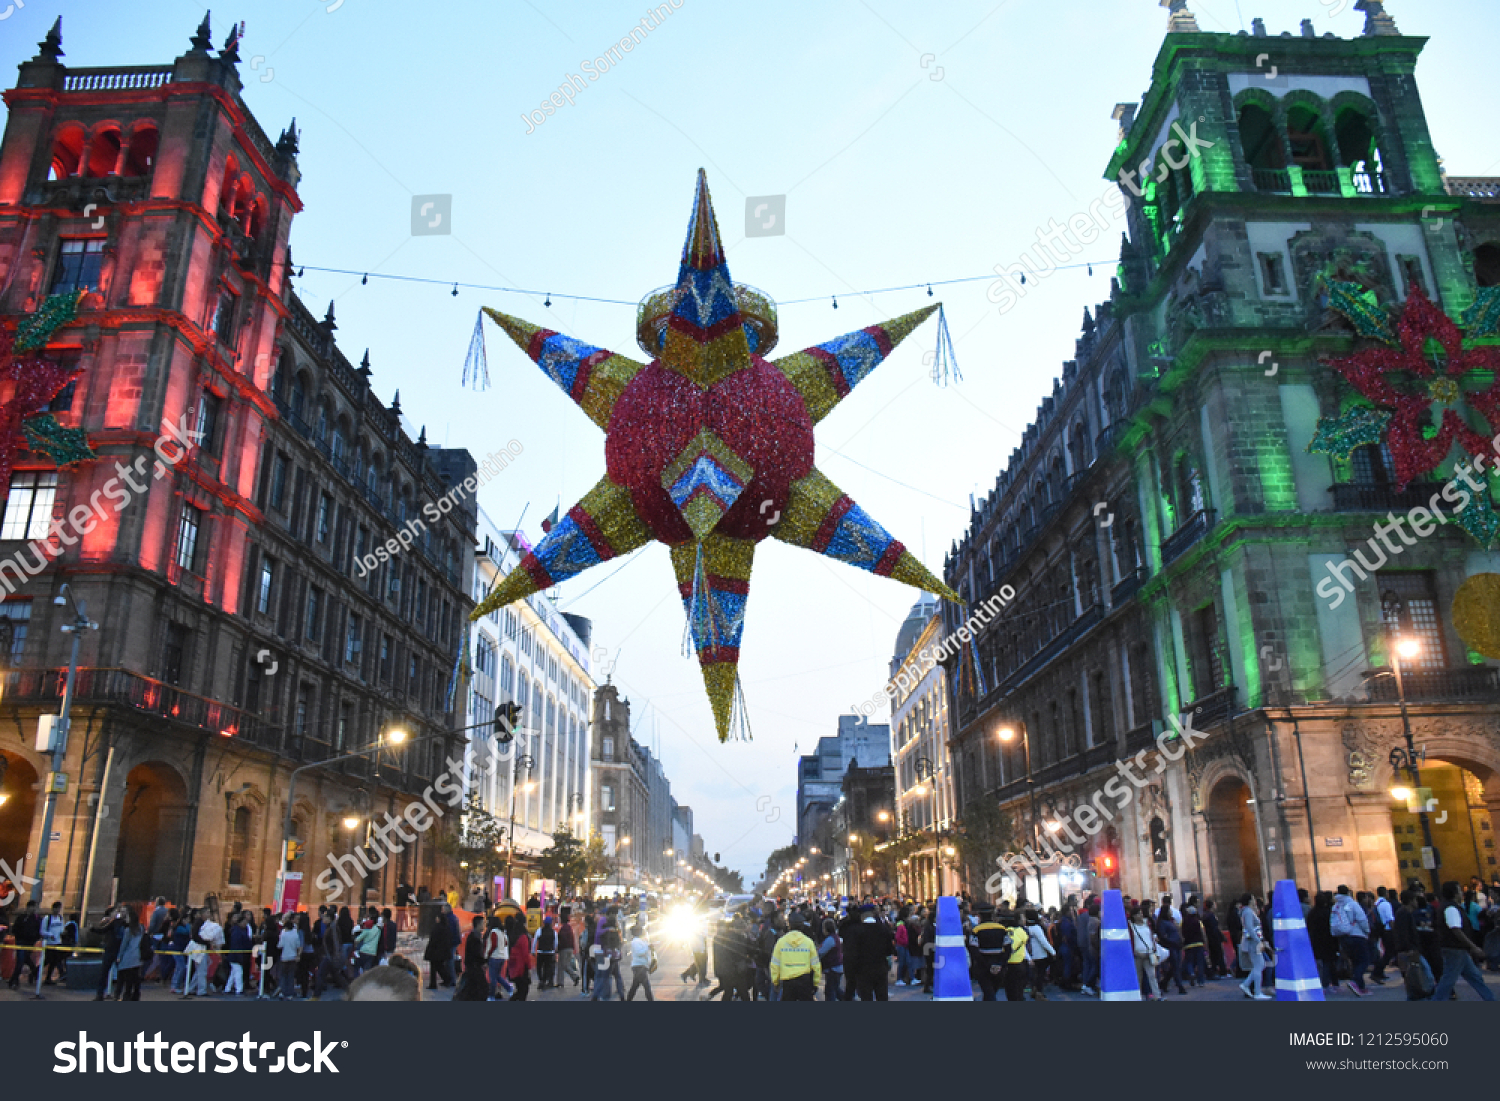 Images Of Zocalo In Mexico Christmas 2021 Giant Hanging Mexico Citys Zocalo Christmas Stock Photo Edit Now 1212595060